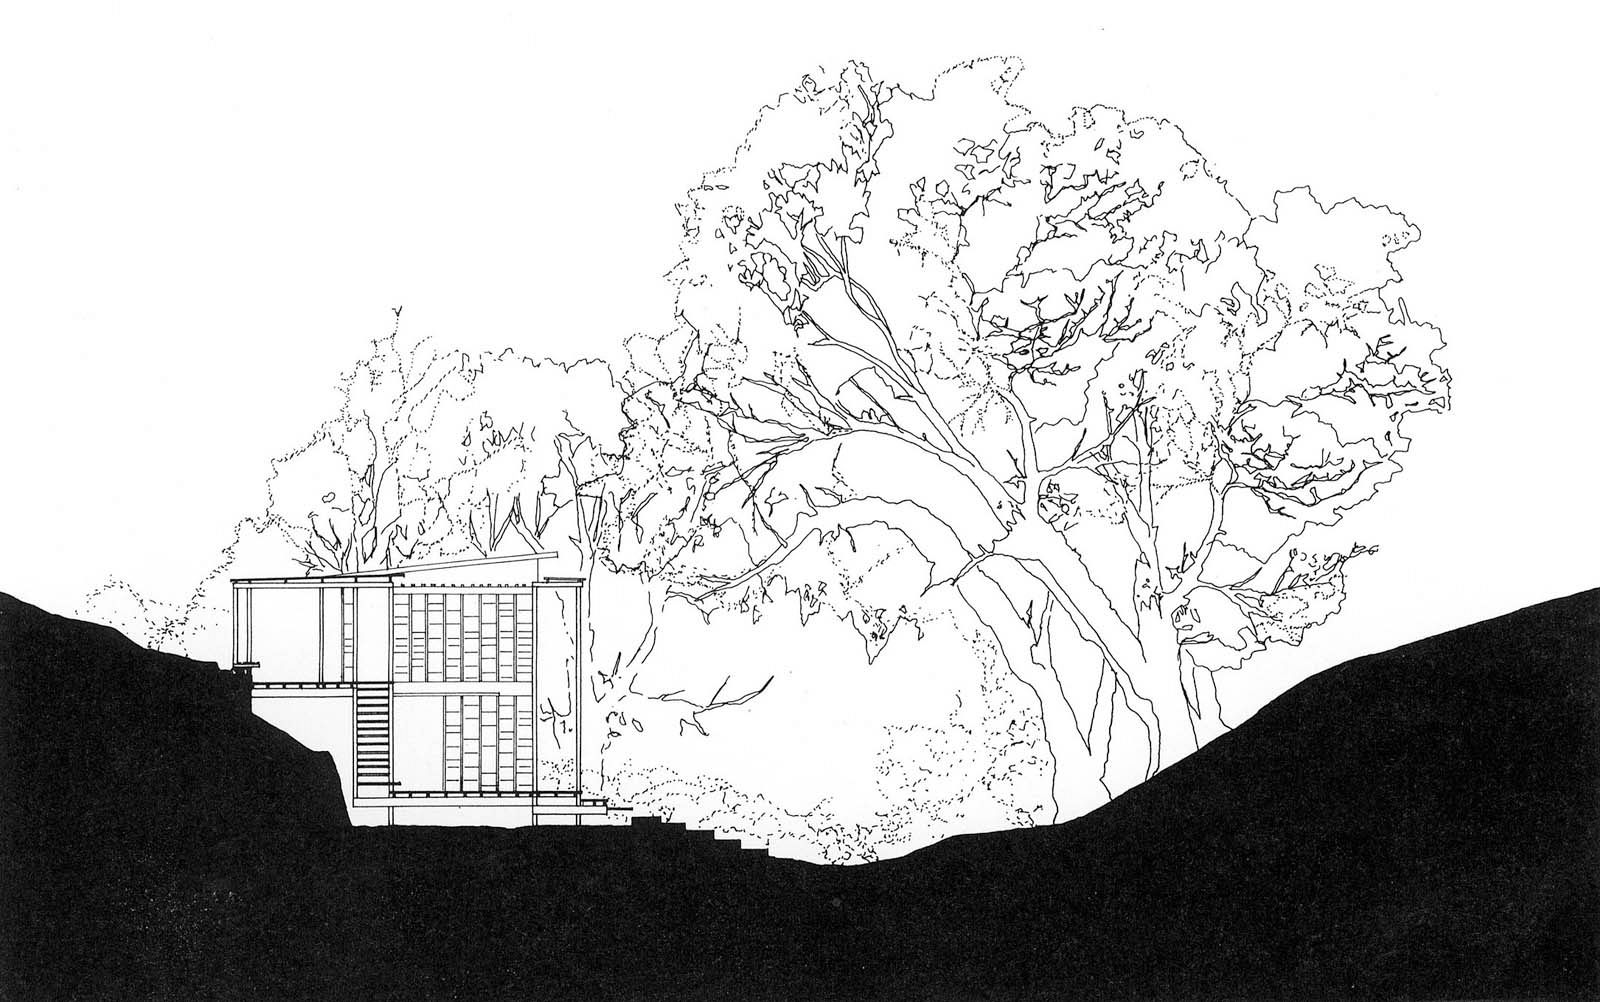 Andresen O'Gorman: Rosebery House, Highgate Hill, Queensland, Australia 1997. Section.